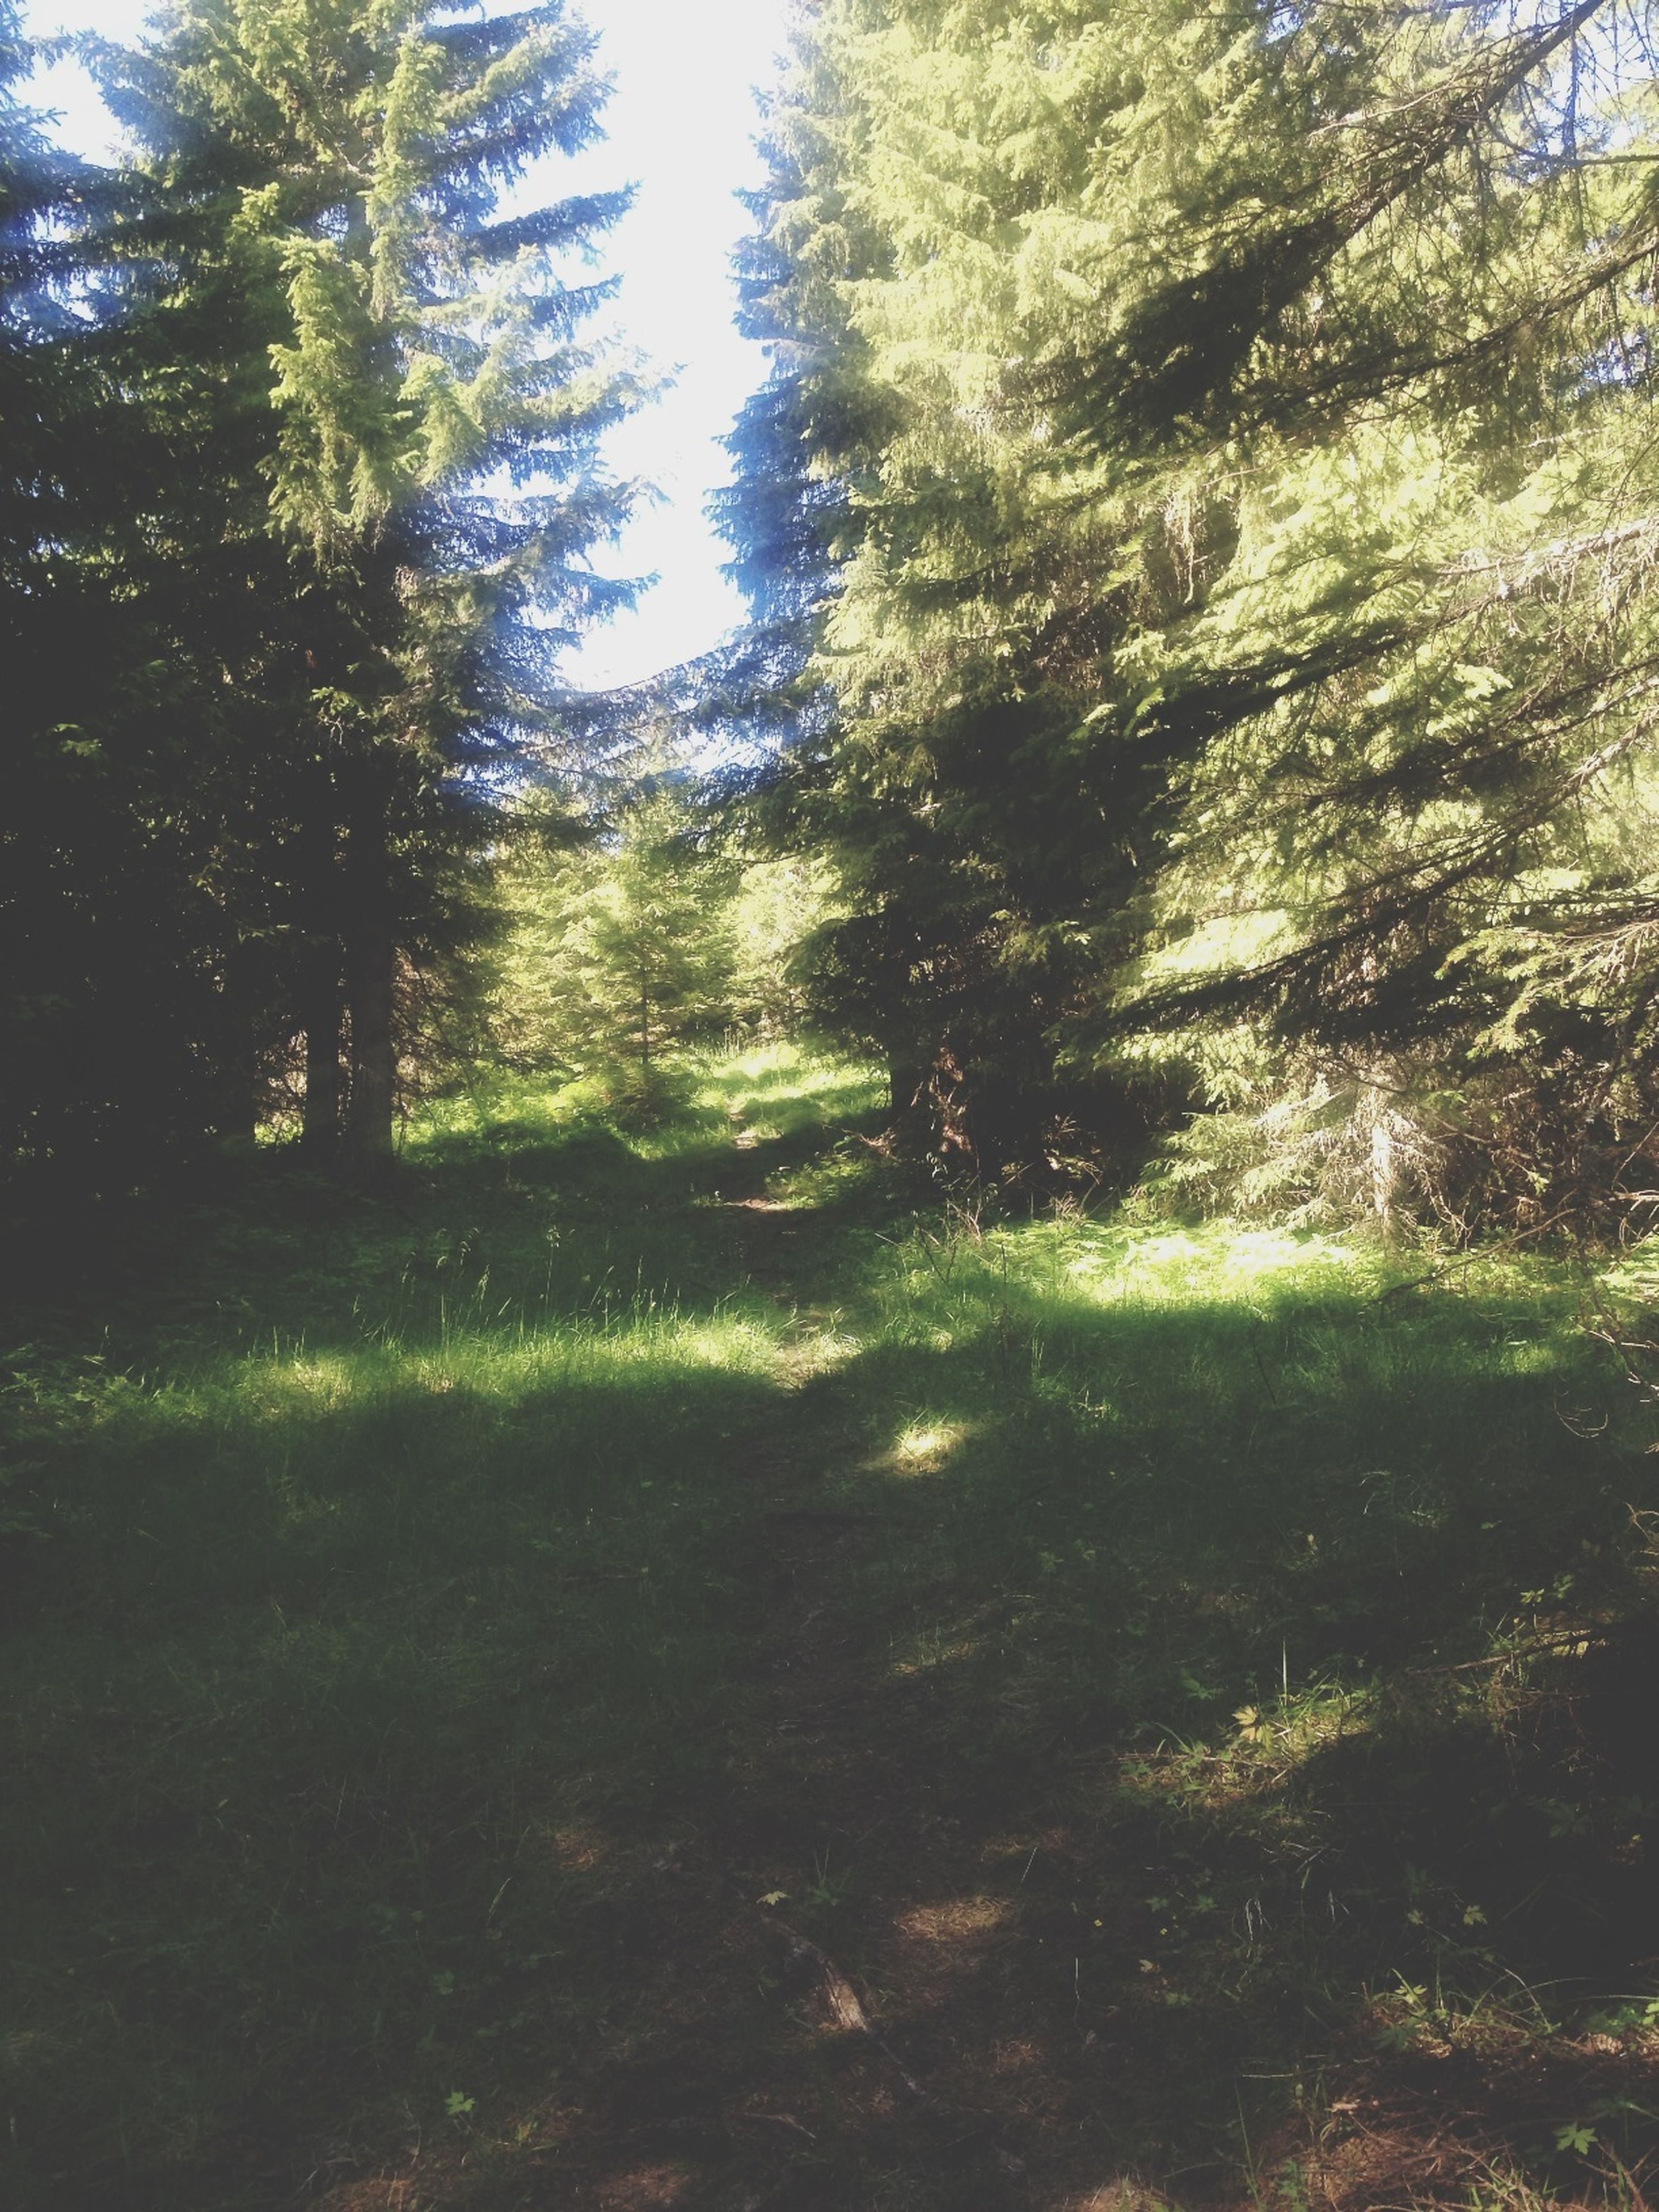 tree, tranquility, growth, tranquil scene, green color, nature, grass, beauty in nature, sunlight, scenics, forest, shadow, branch, day, landscape, the way forward, field, outdoors, non-urban scene, tree trunk